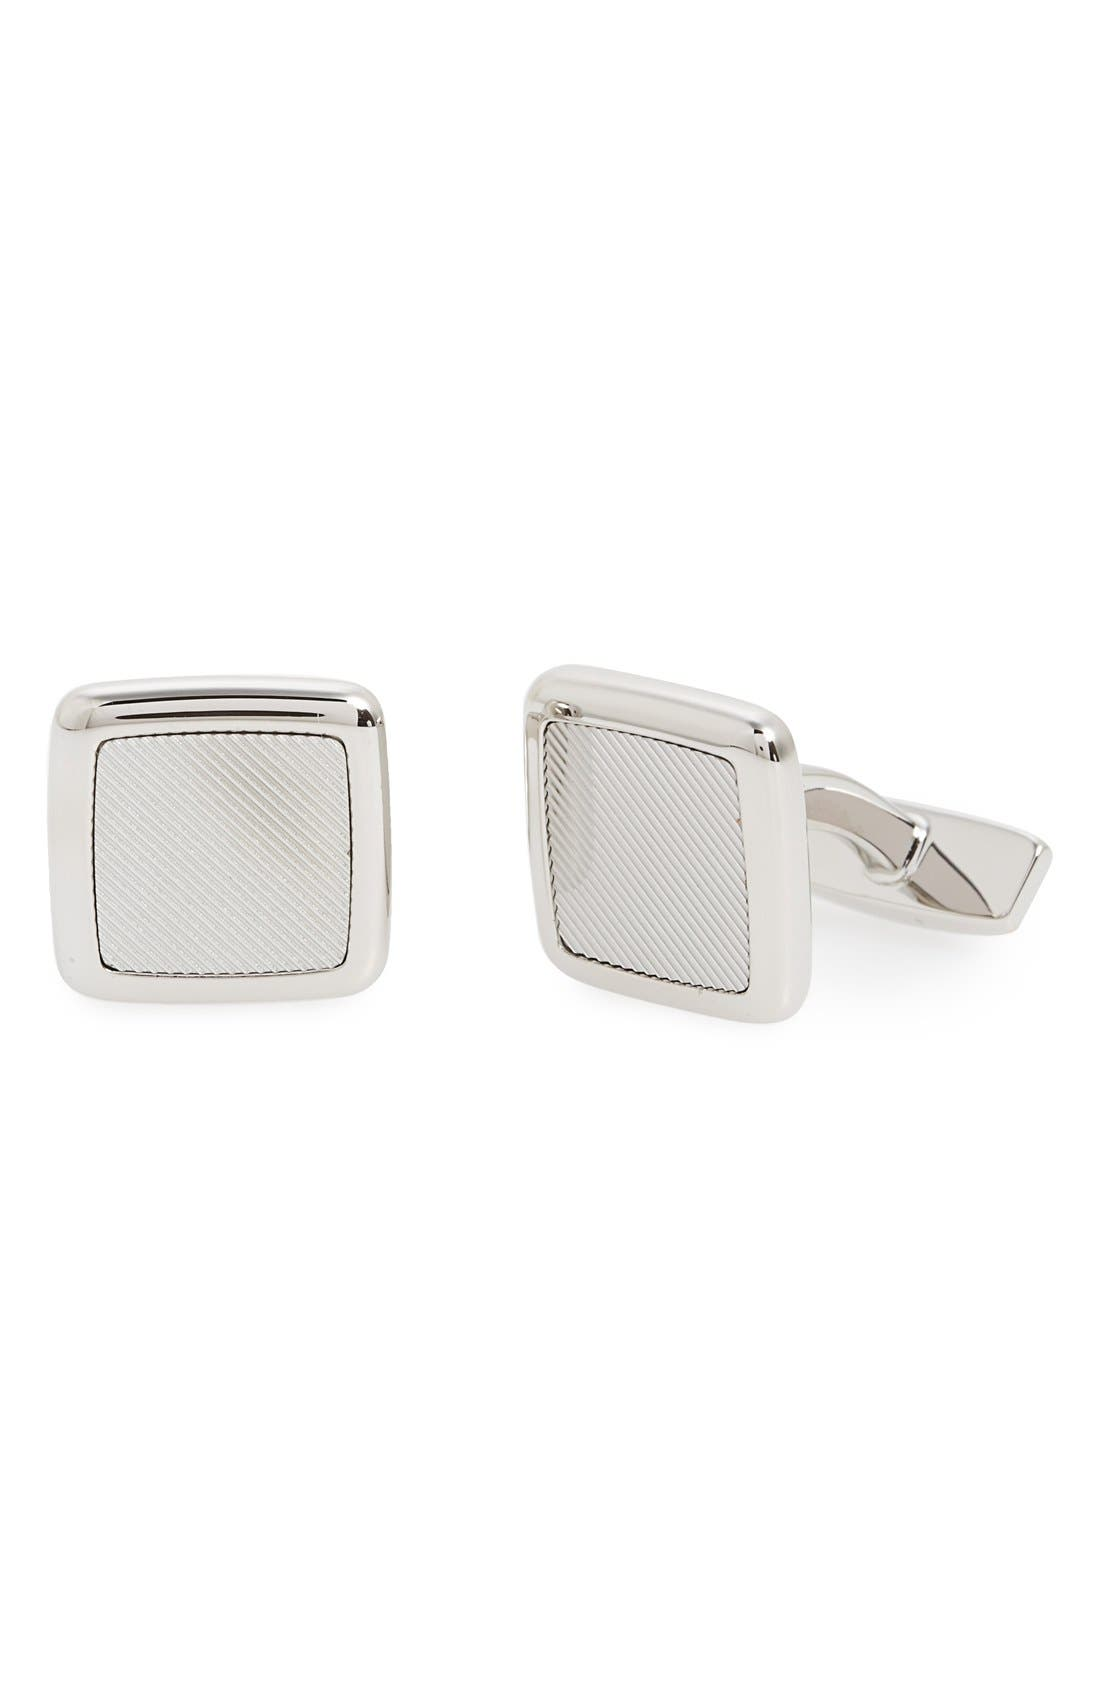 Alternate Image 1 Selected - BOSS 'Ennio' Cuff Links